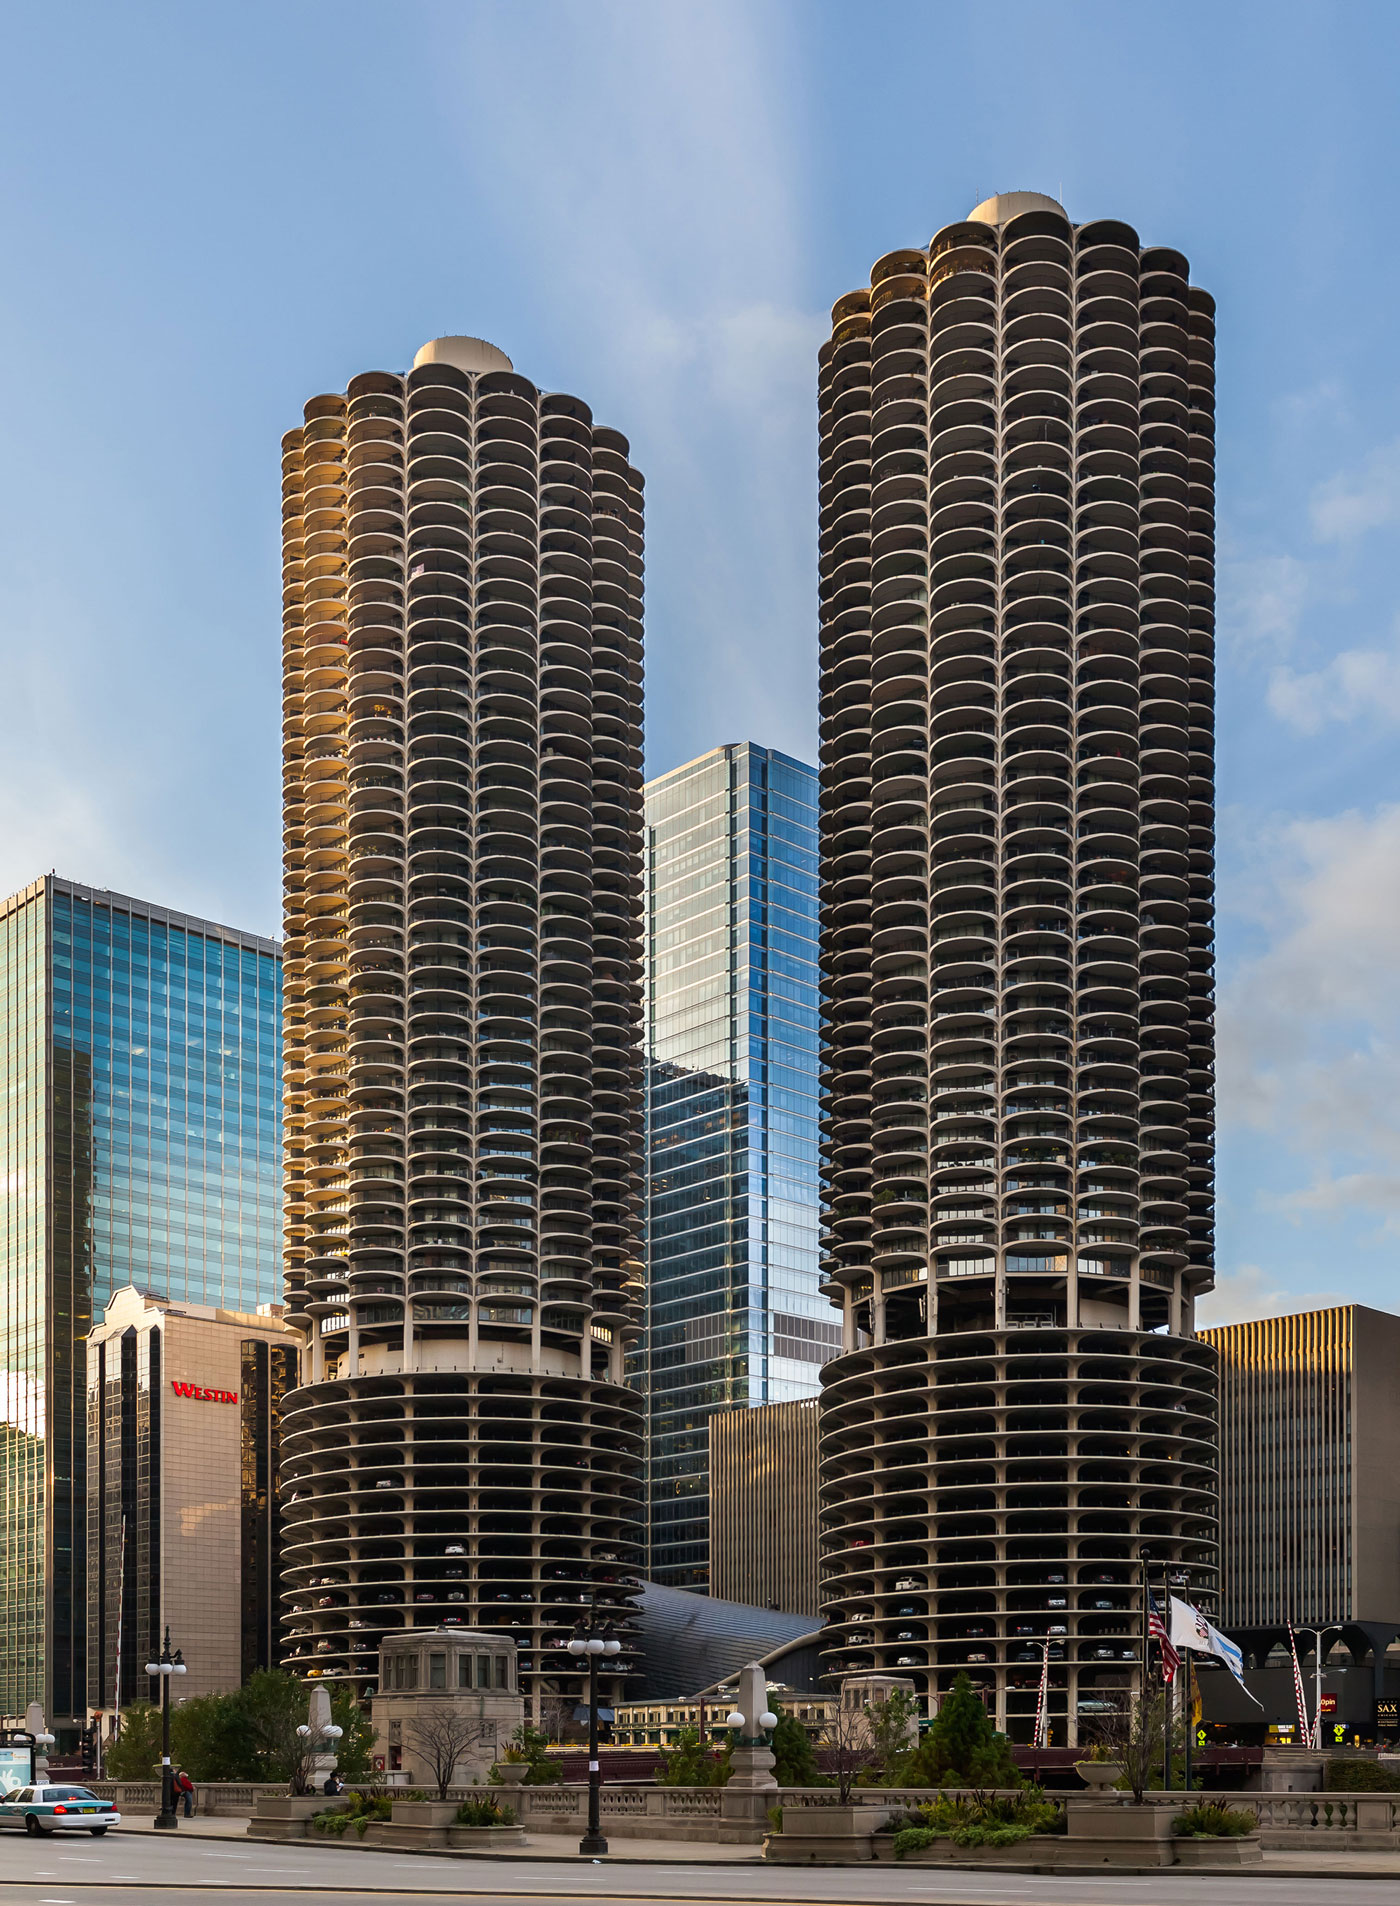 Skyscrapers of Marina_City_Chicago Chicago, the eye-catching tall buildings in the Windy City